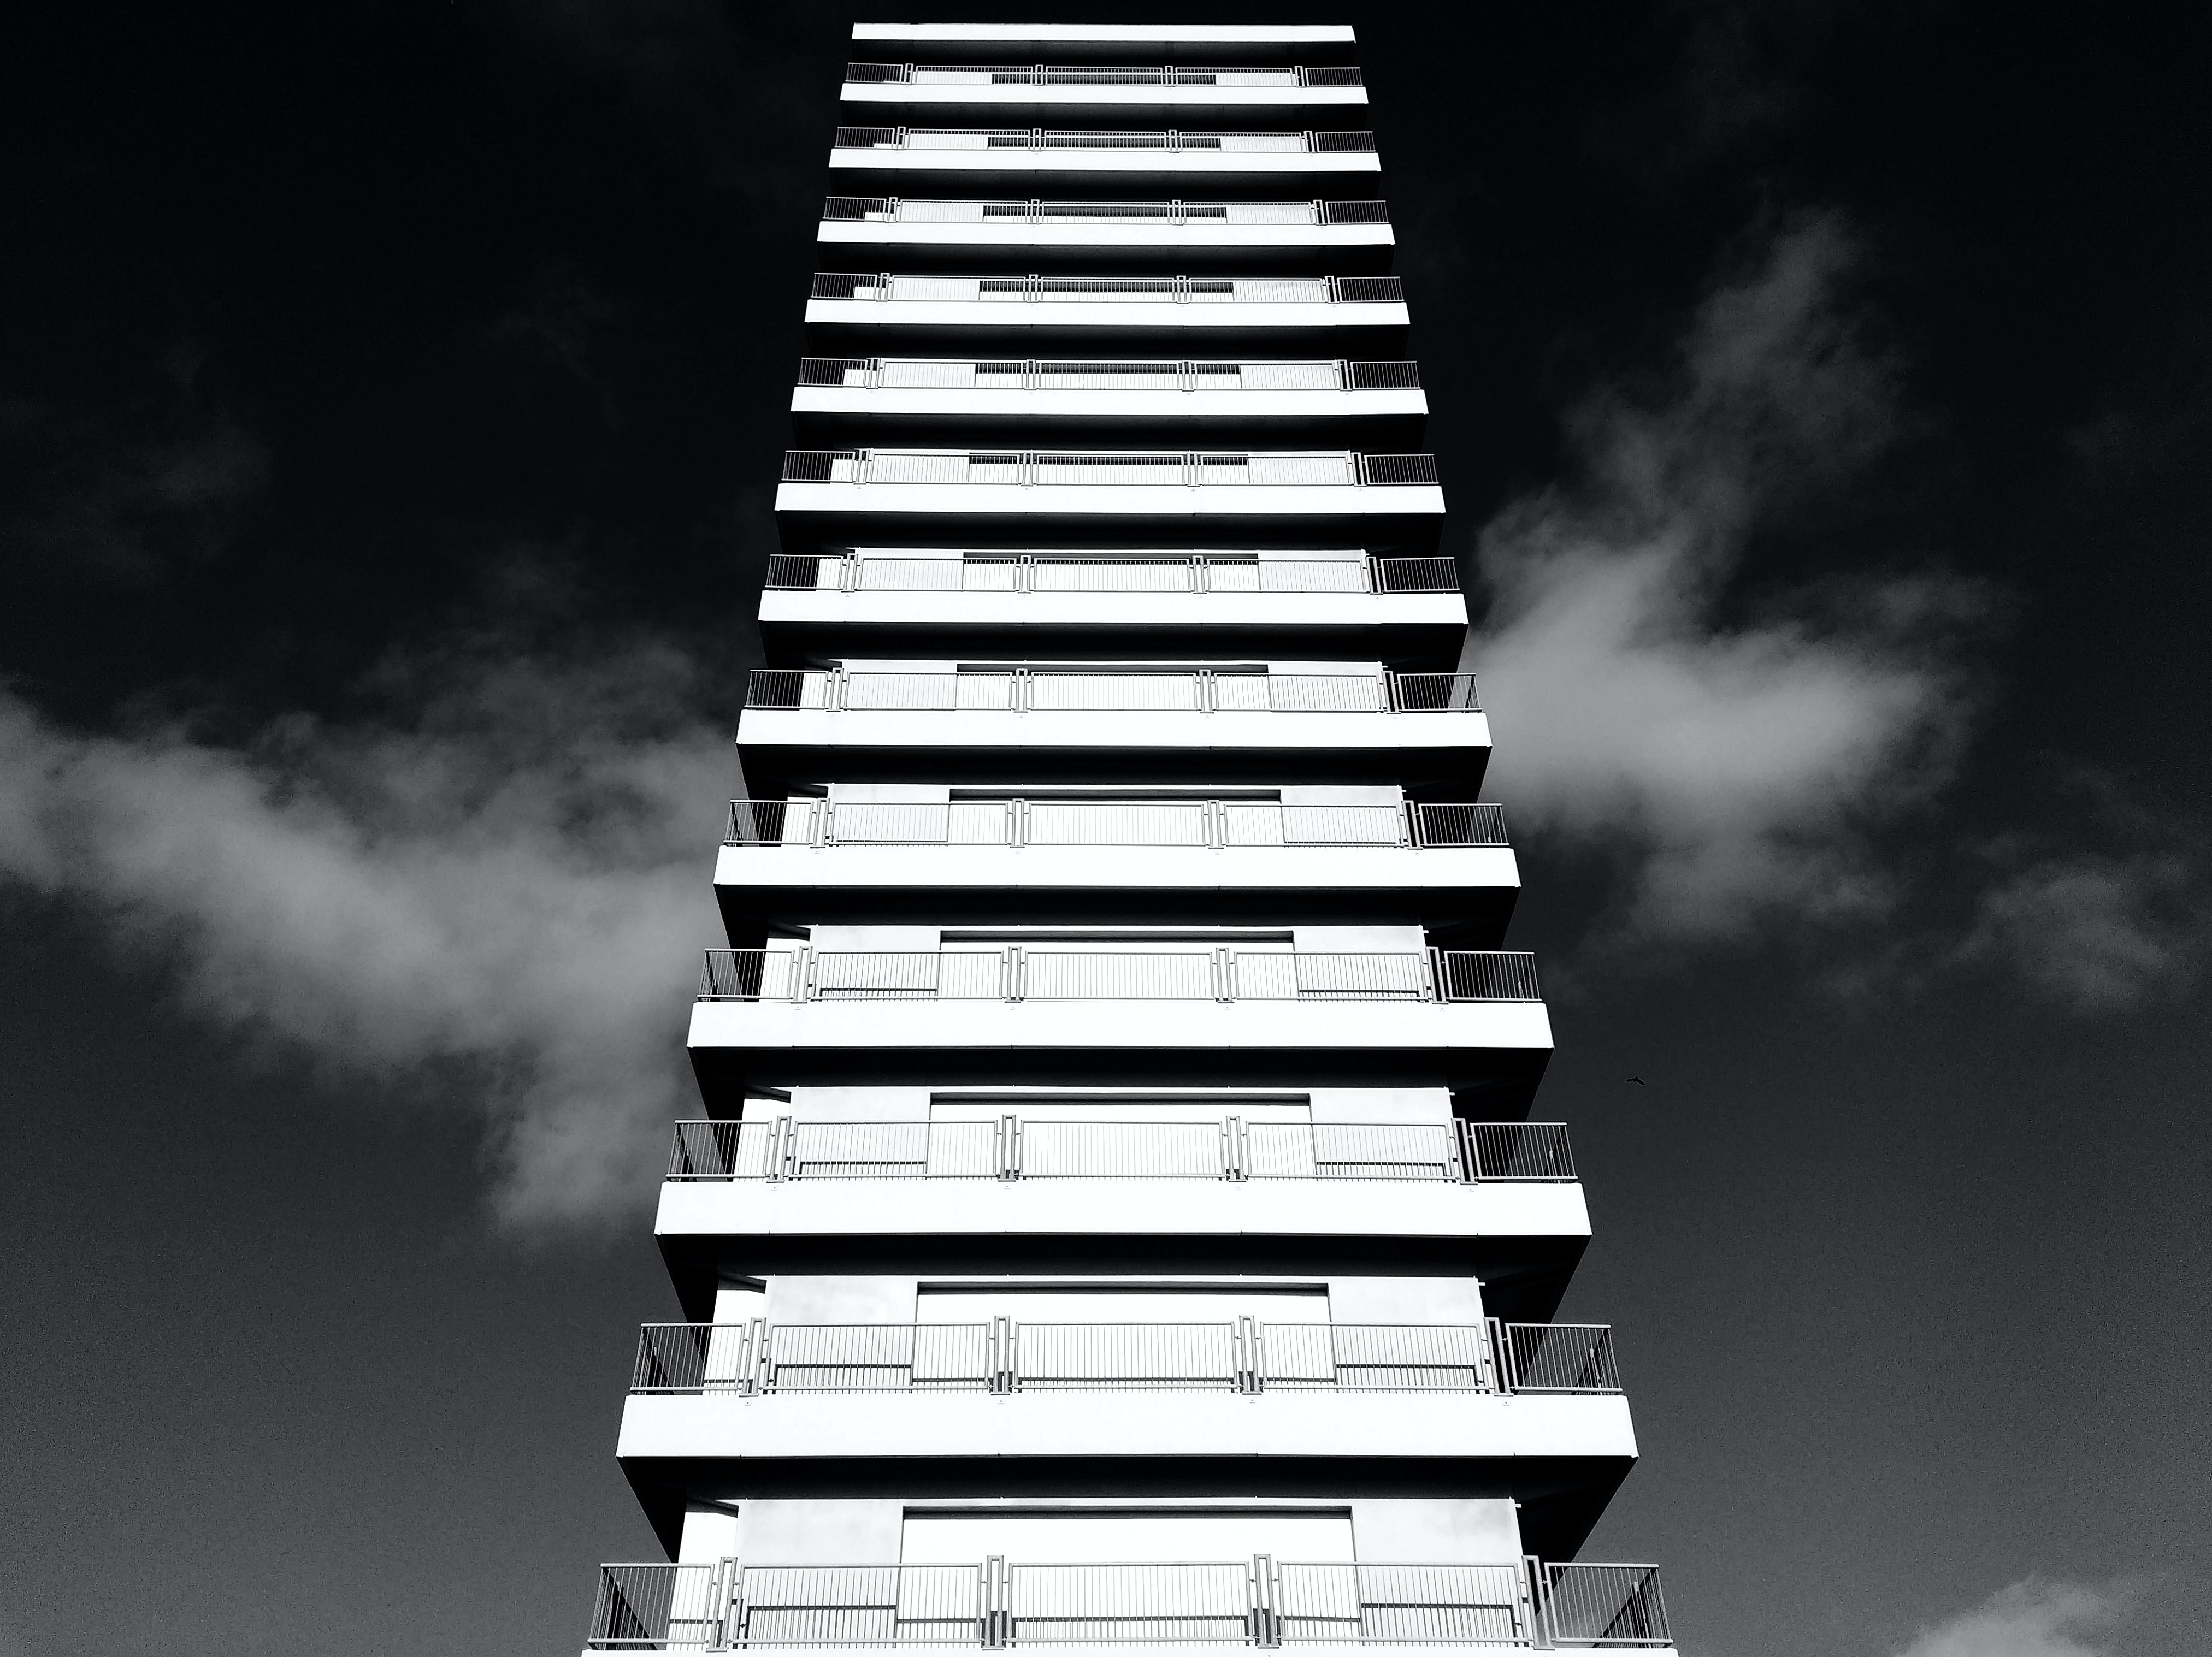 concrete building in gray scale photography